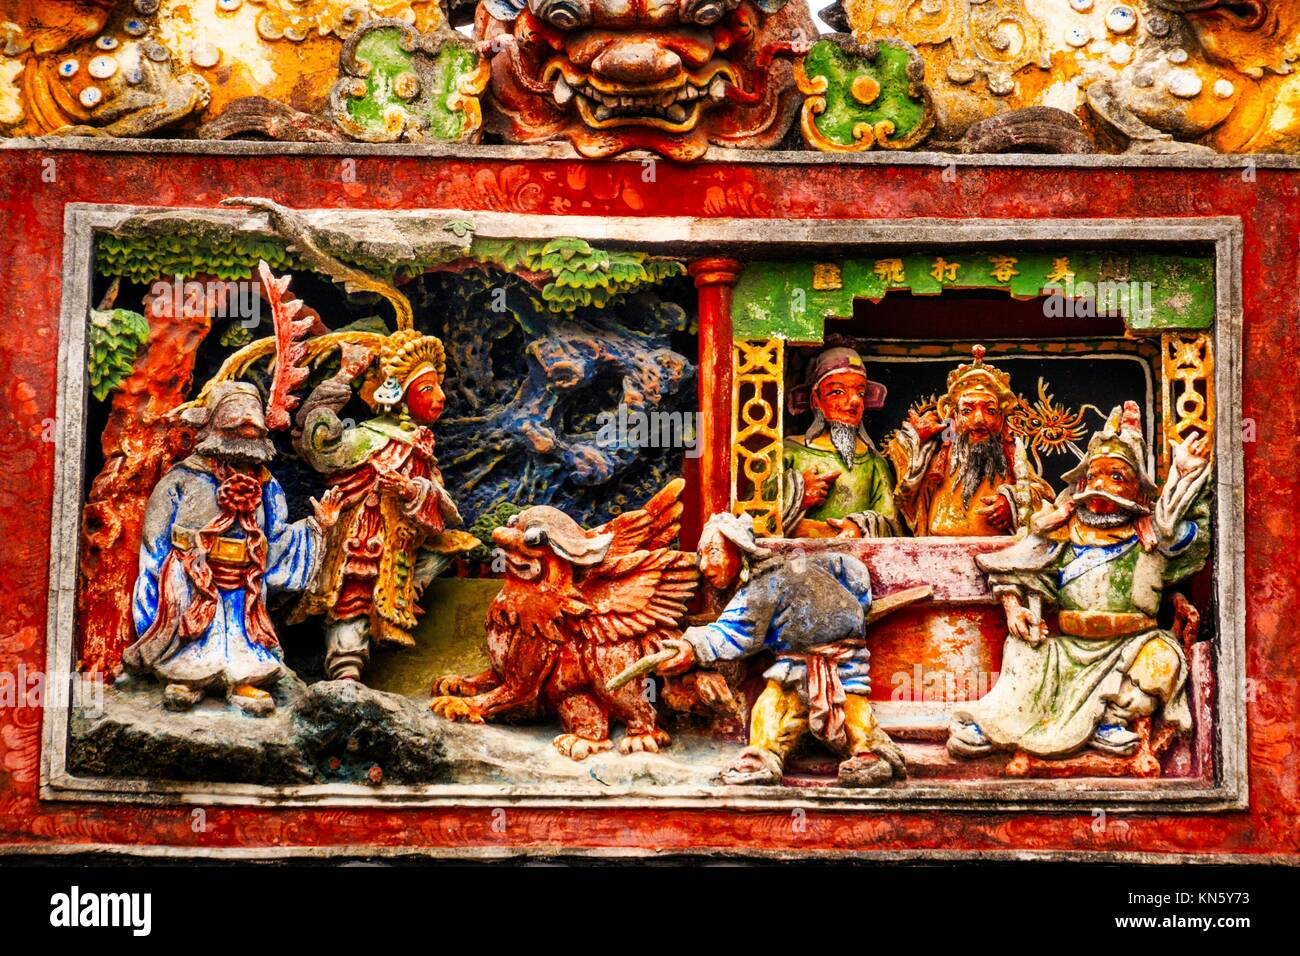 Ceramic Figures Statues Dragons Chen Ancestral Taoist Temple Guangzhou City Guangdong Province China. Most famous - Stock Image